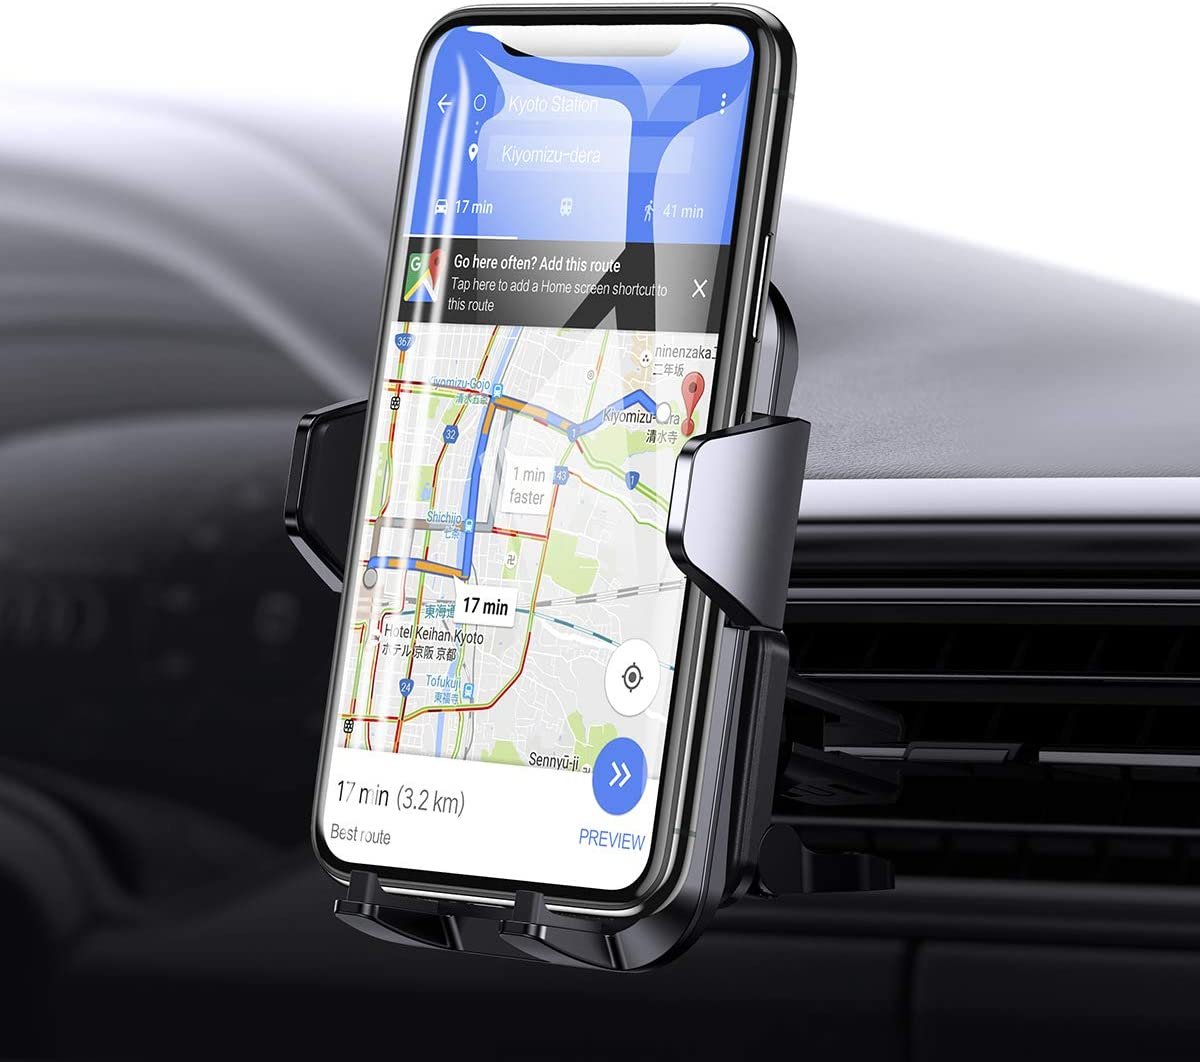 Universal Cell Phone Holder for Car, Joyroom?2020 Upgrade? Real Stable Car Phone Mount Holder, 360 Adjustable Phone Mount Fit for iPhone SE 11 X XS XR 8 Plus 7 and More.